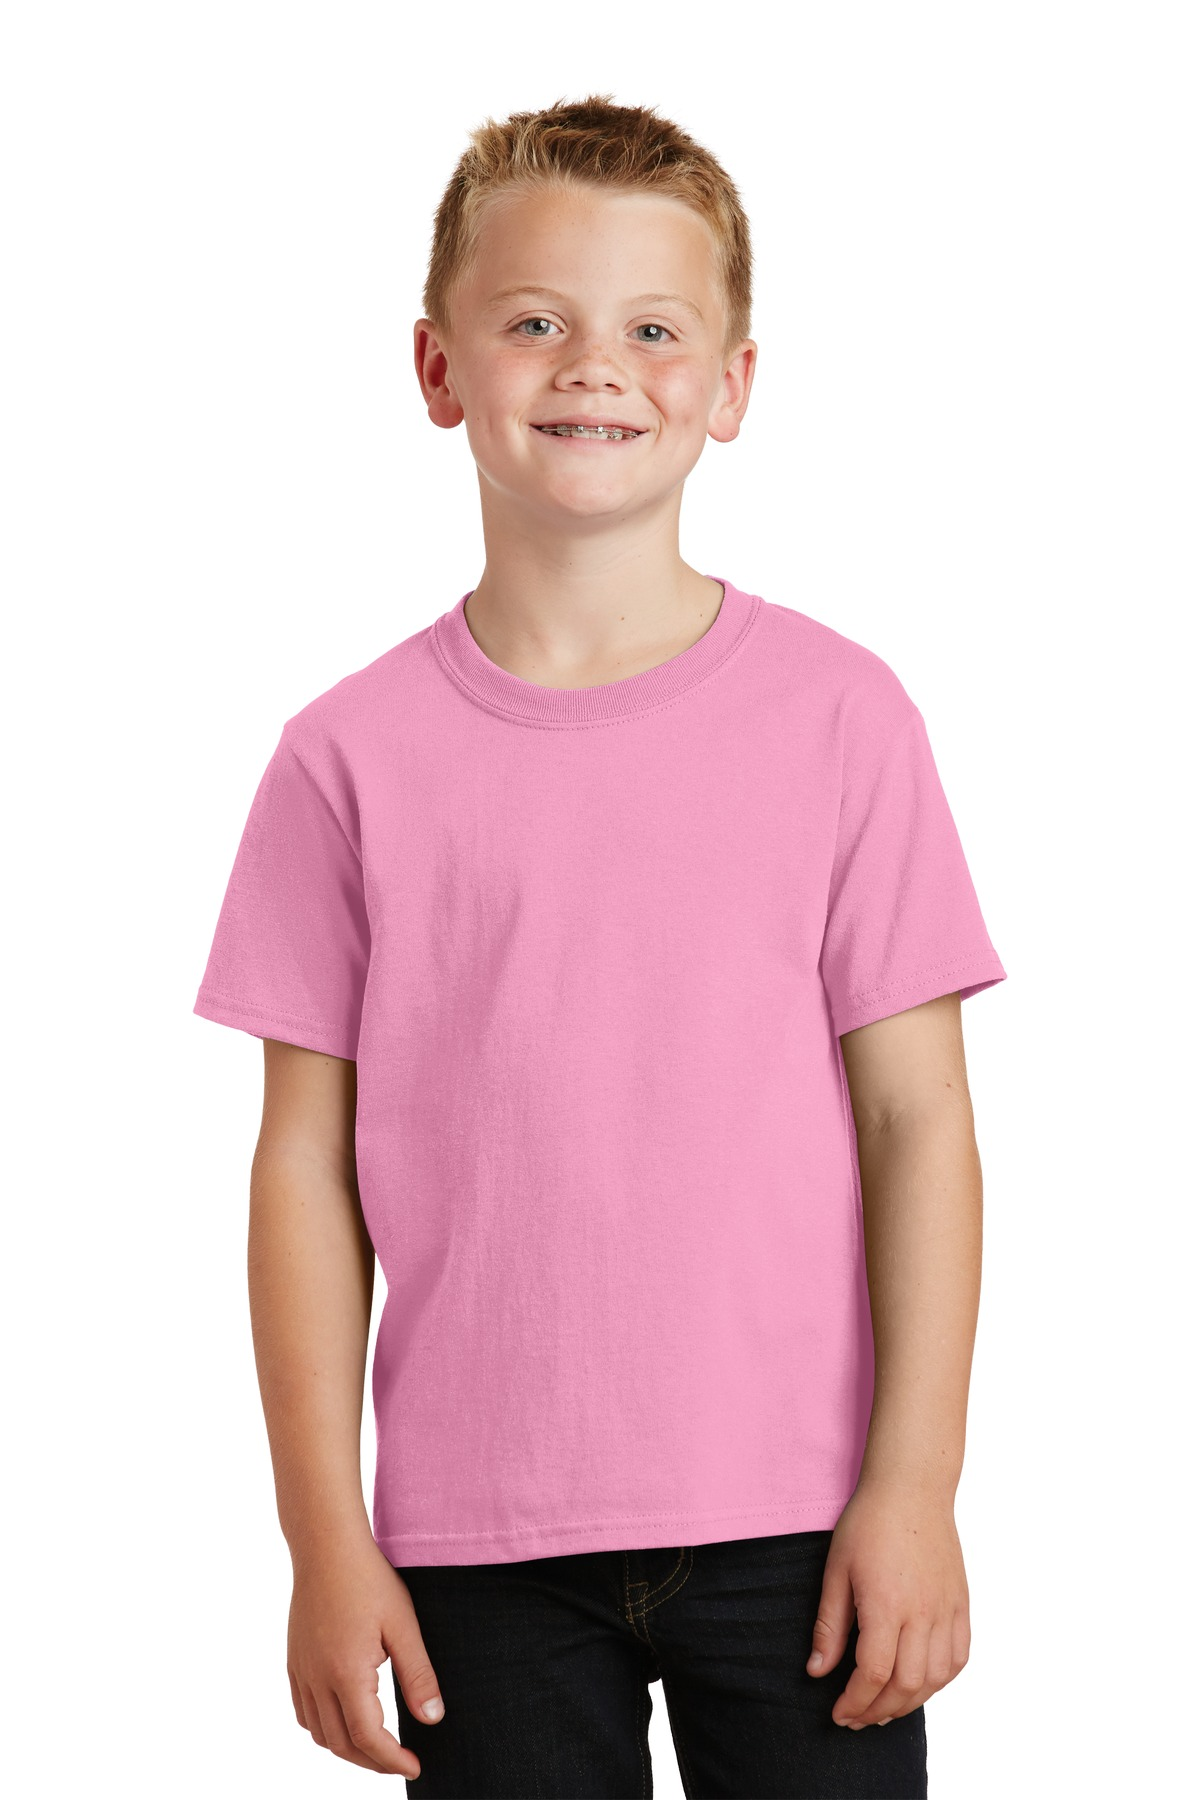 Port & Company ®  - Youth Core Cotton Tee. PC54Y - Candy Pink